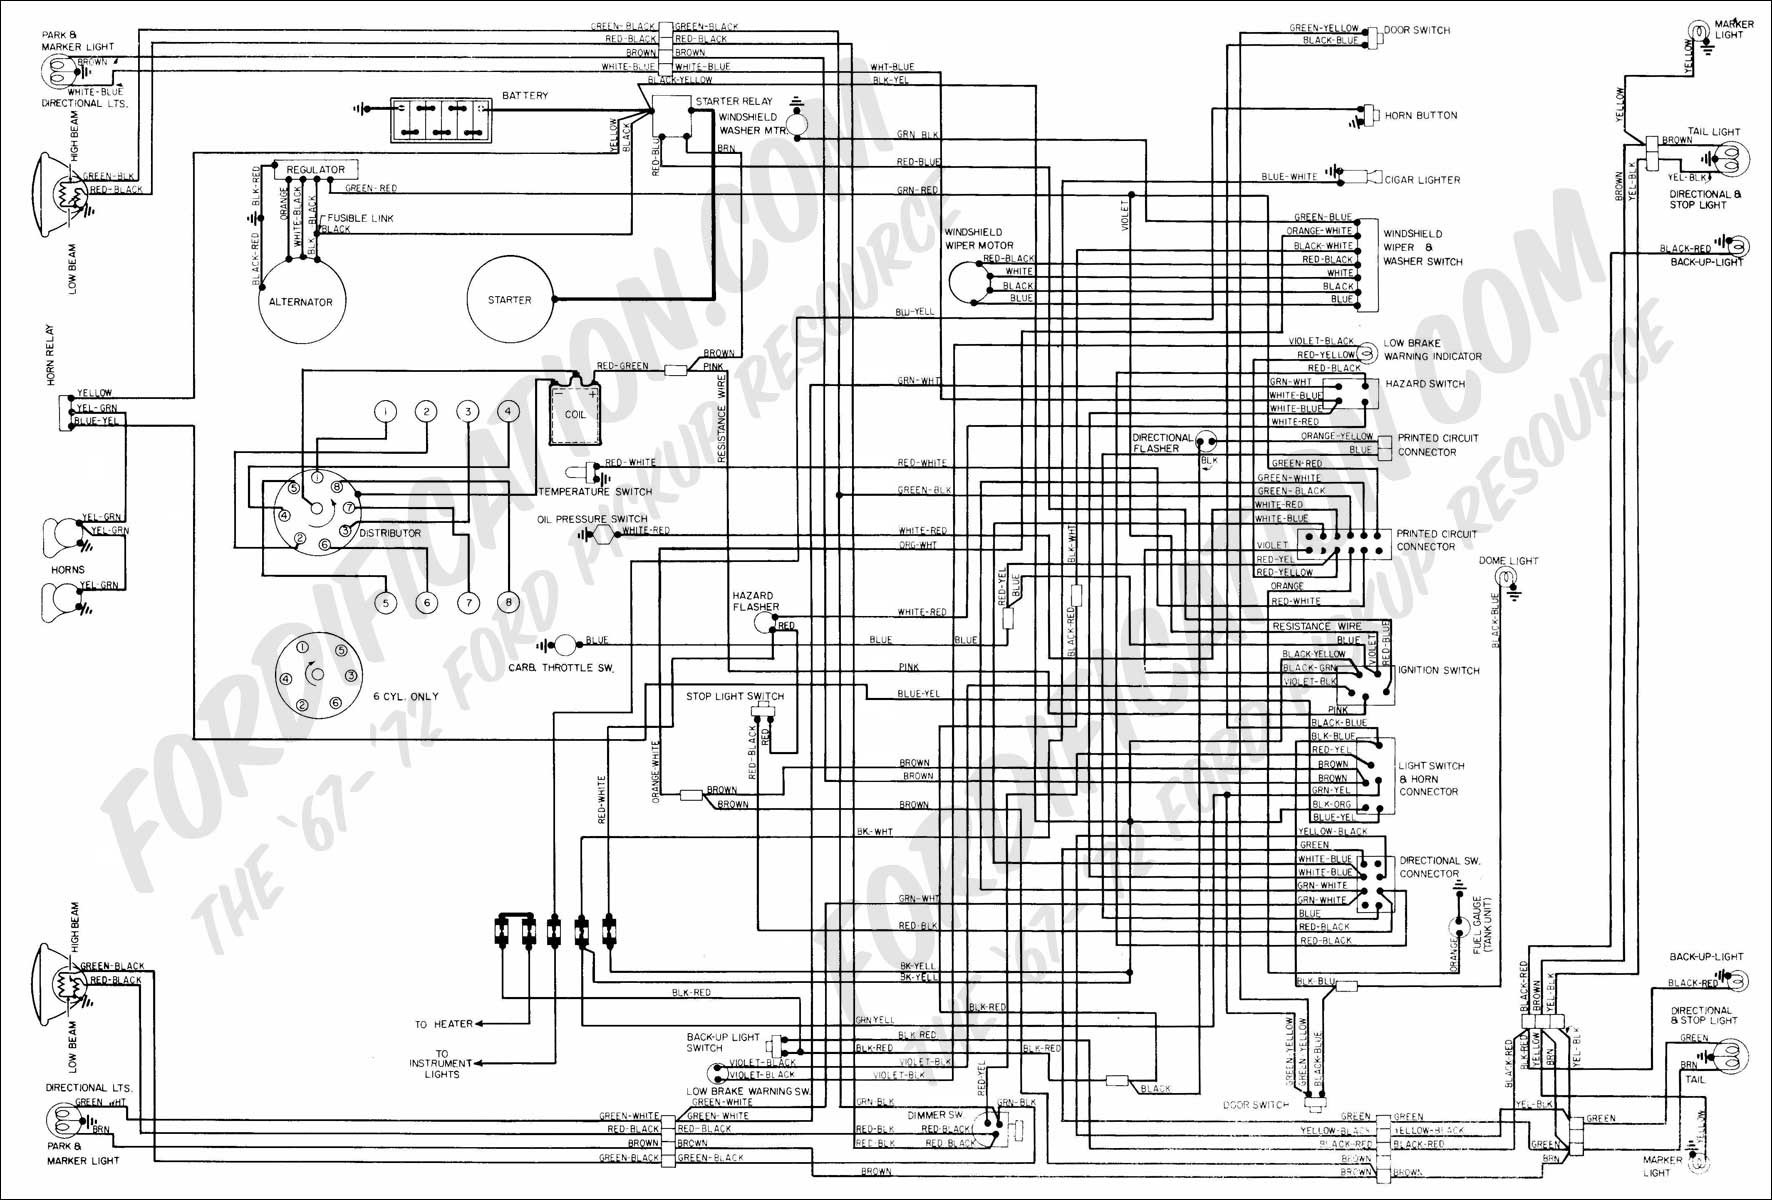 2003 Ford Windstar Headlamp Wiring Diagram Another Blog About 1999 Fuse Box Rh Detoxicrecenze Com